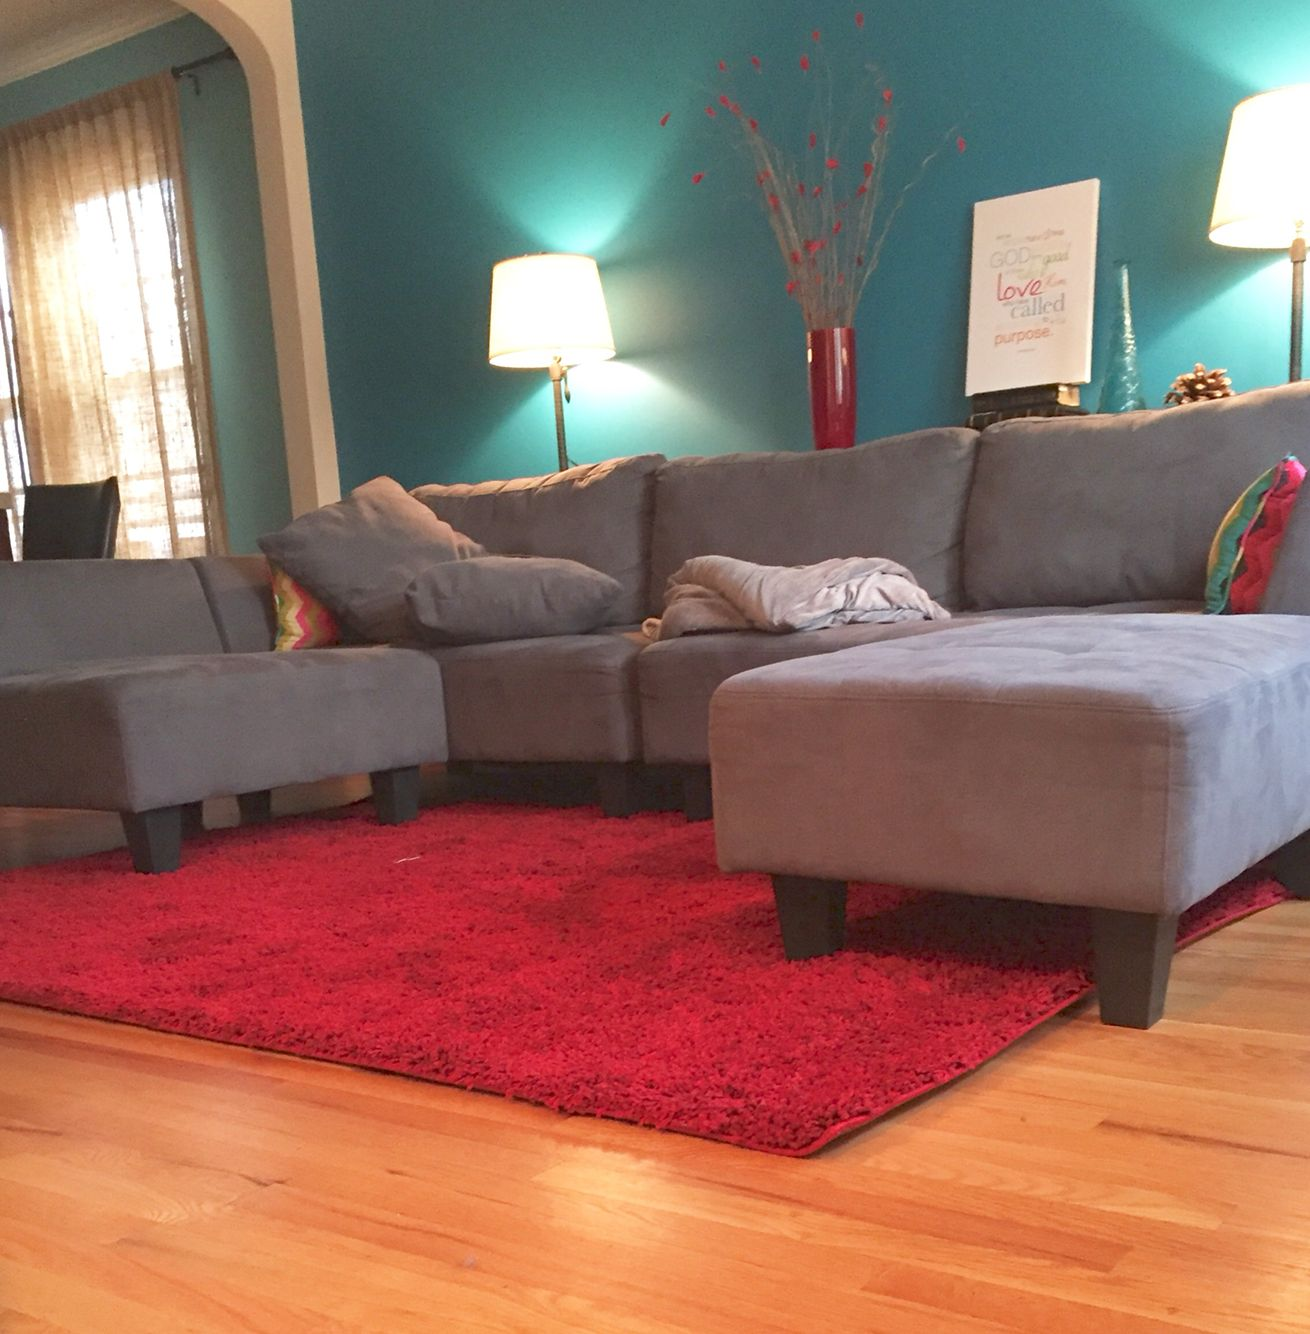 Red Living Room: Living Room Idea: Teal Blue Wall, Grey Couch, Ruby Red Rug